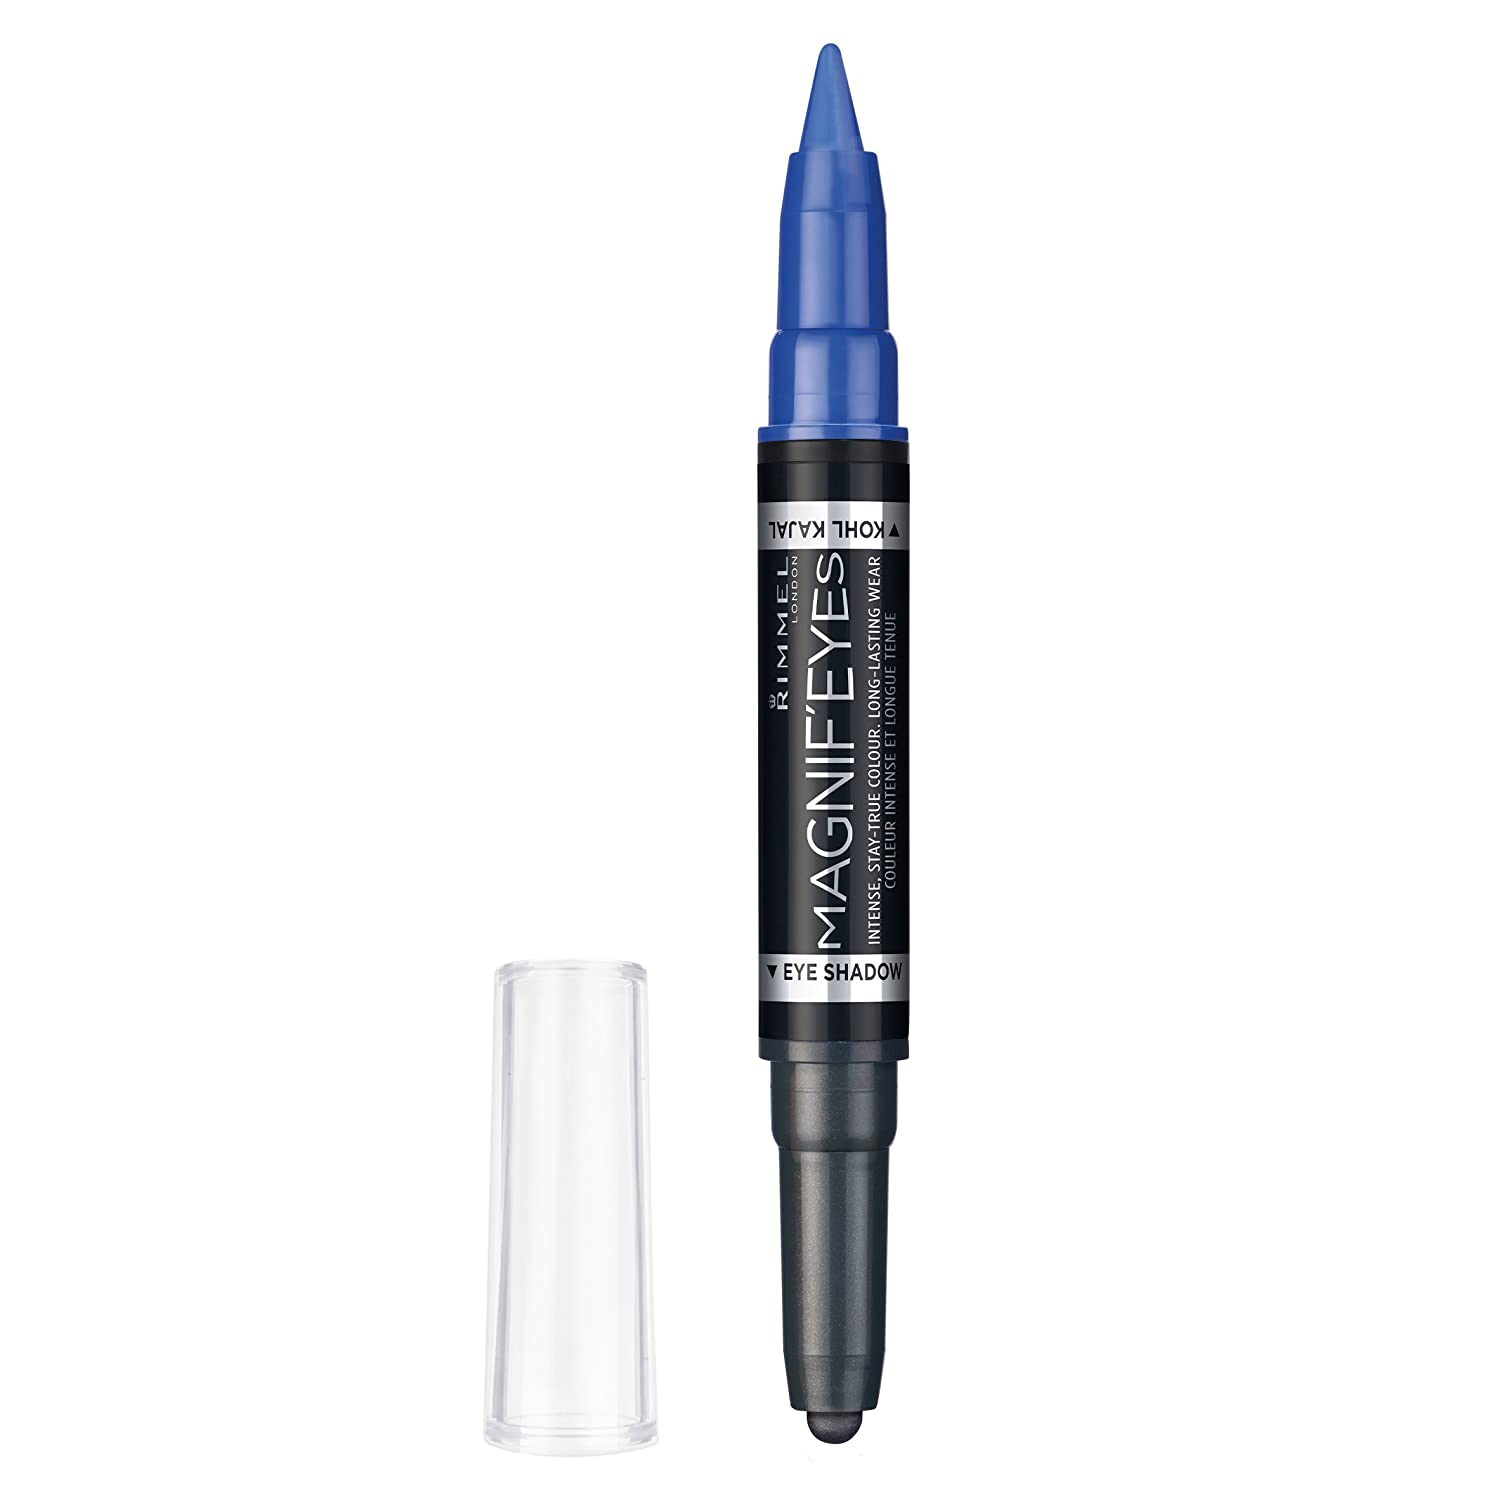 Rimmel London Magnif'Eyes Double Ended Eyeshadow and Liner 001, Back to Blacks, 1.6 g Coty UK 34776191001